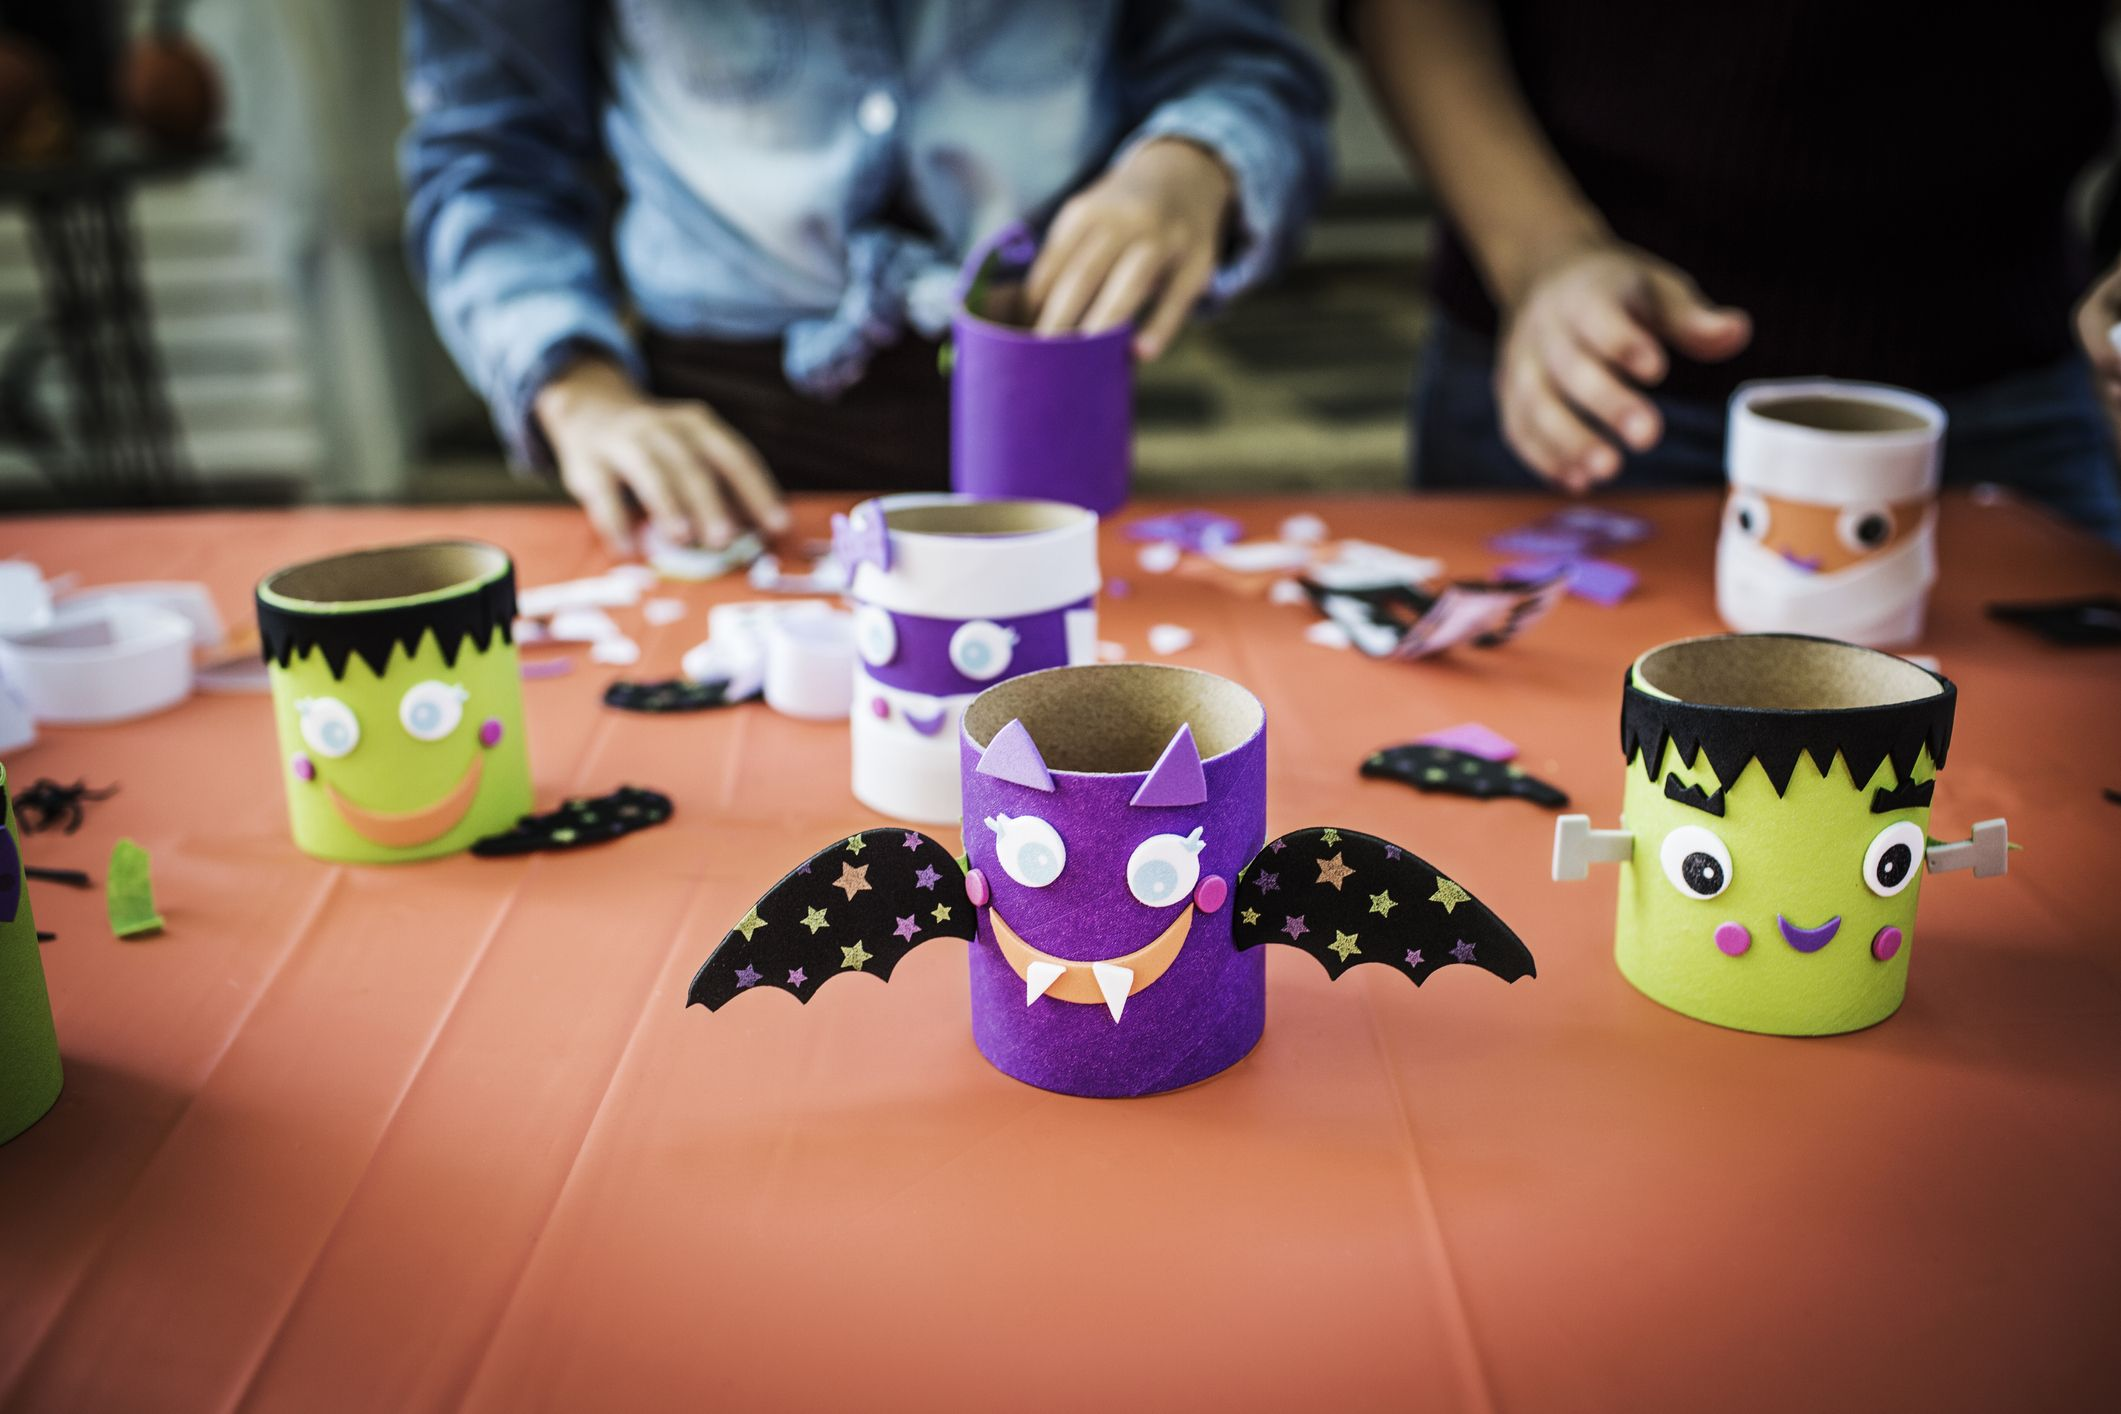 b7a959fb7f5 23 Easy Halloween Crafts for Toddlers - Quick Preschooler Halloween ...